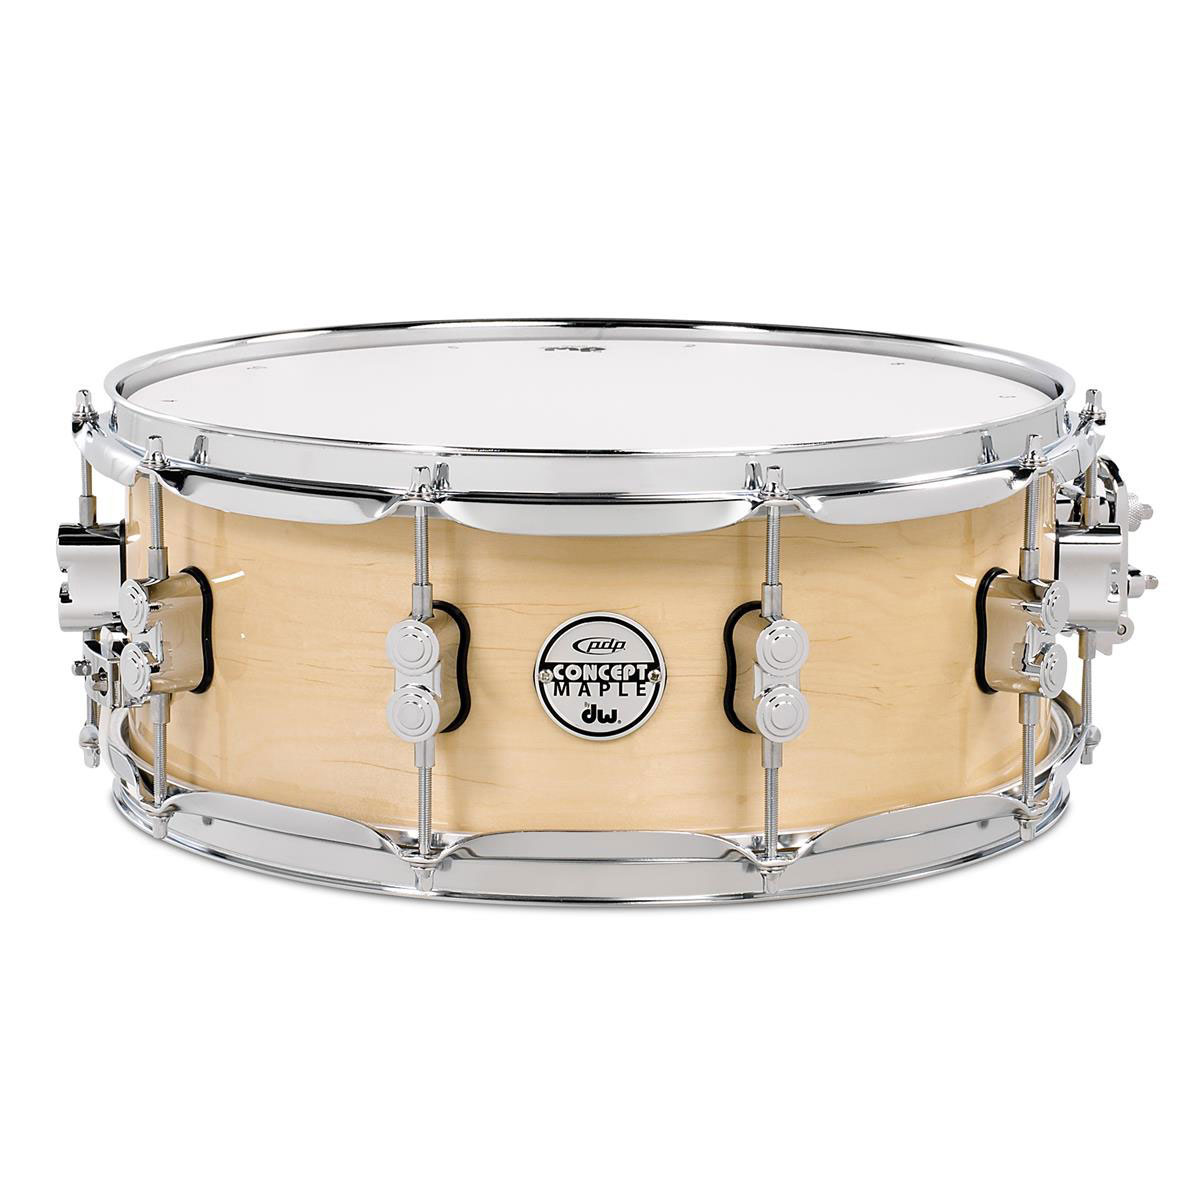 "PDP 5.5"" x 14"" Concept Maple Snare Drum"